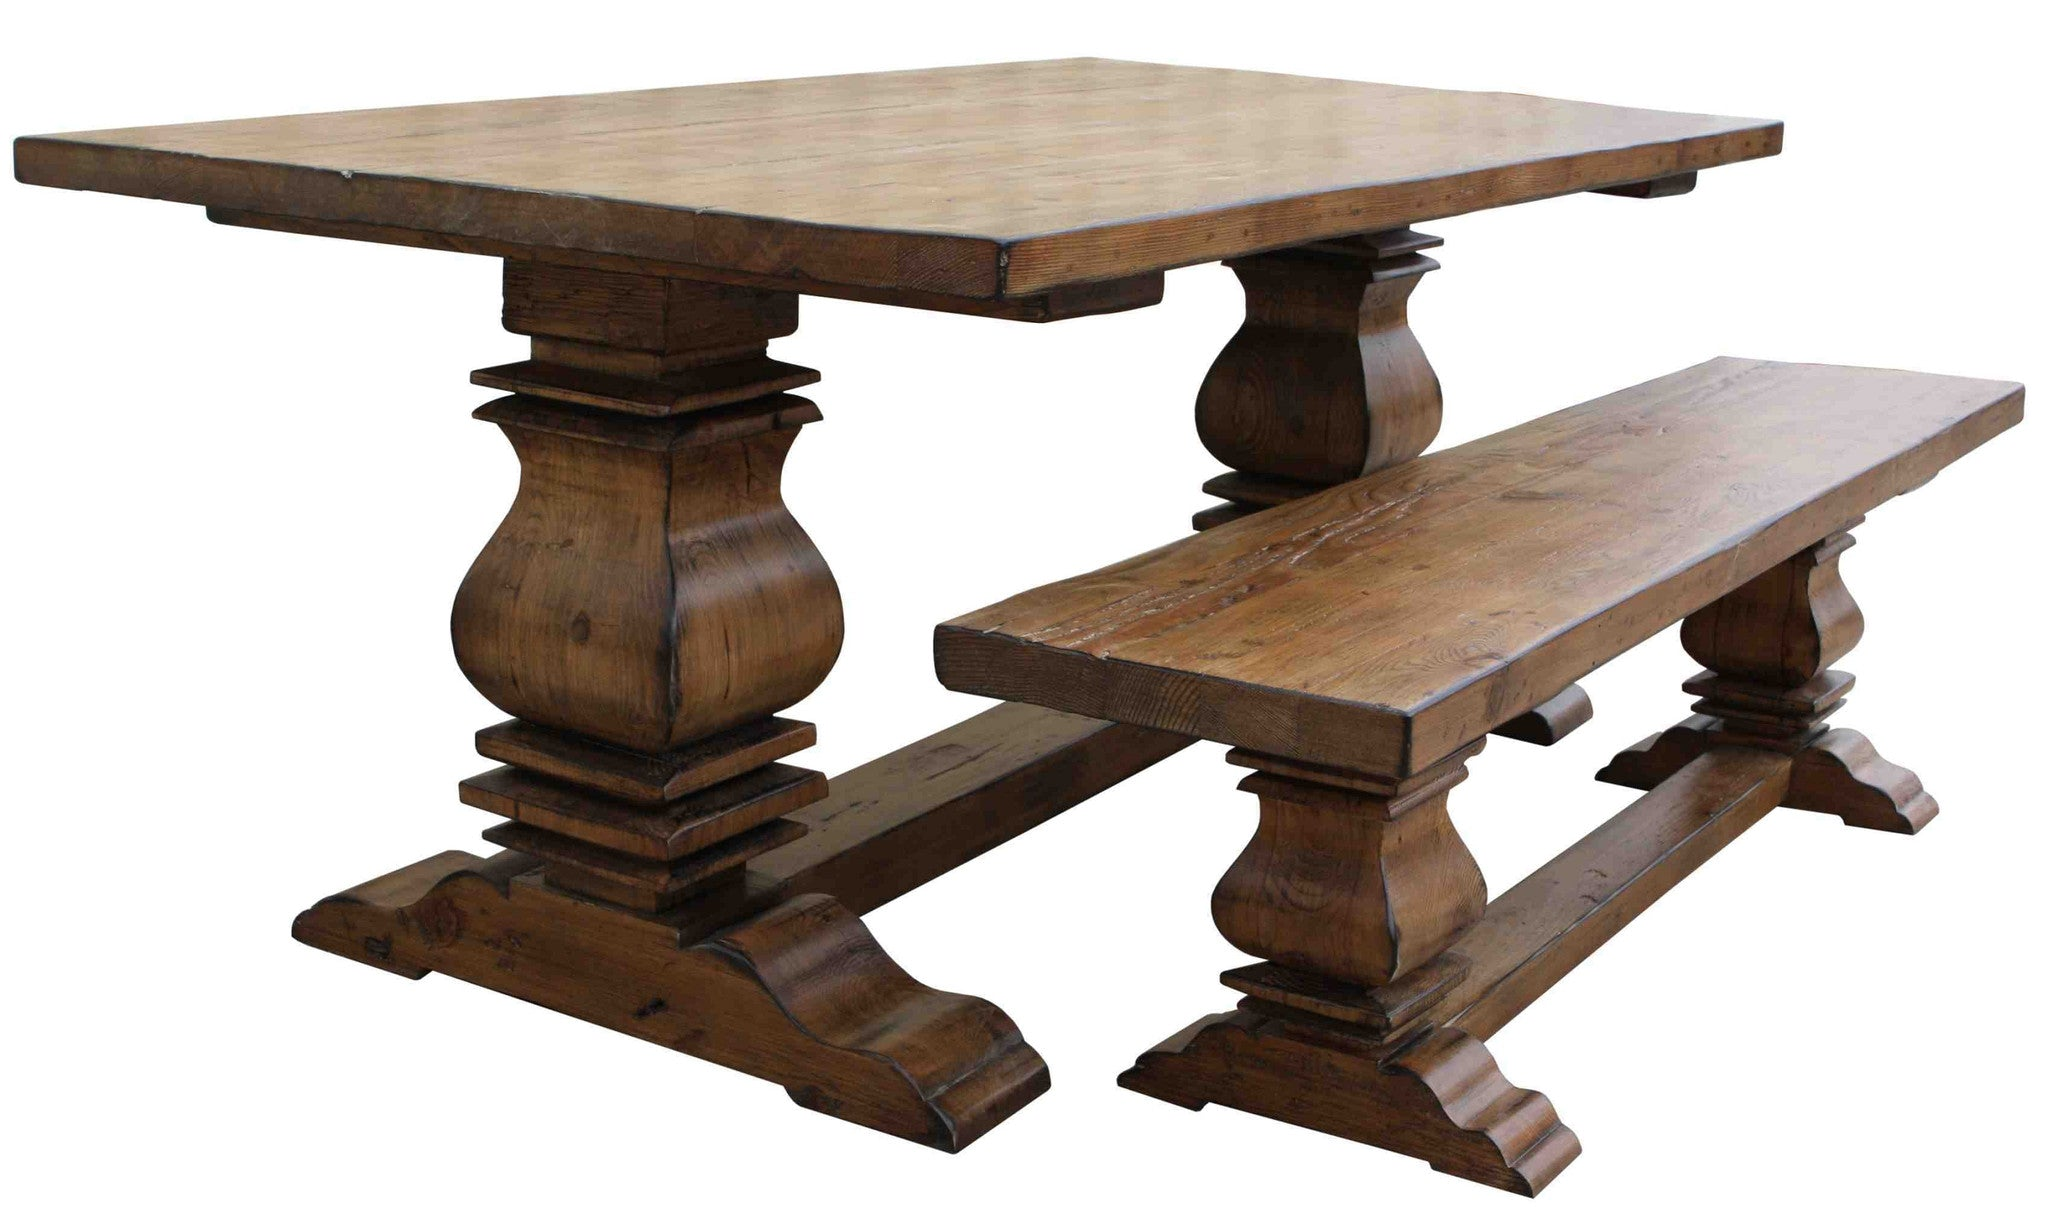 Swell Dining Tables Mortise Tenon Home Interior And Landscaping Oversignezvosmurscom